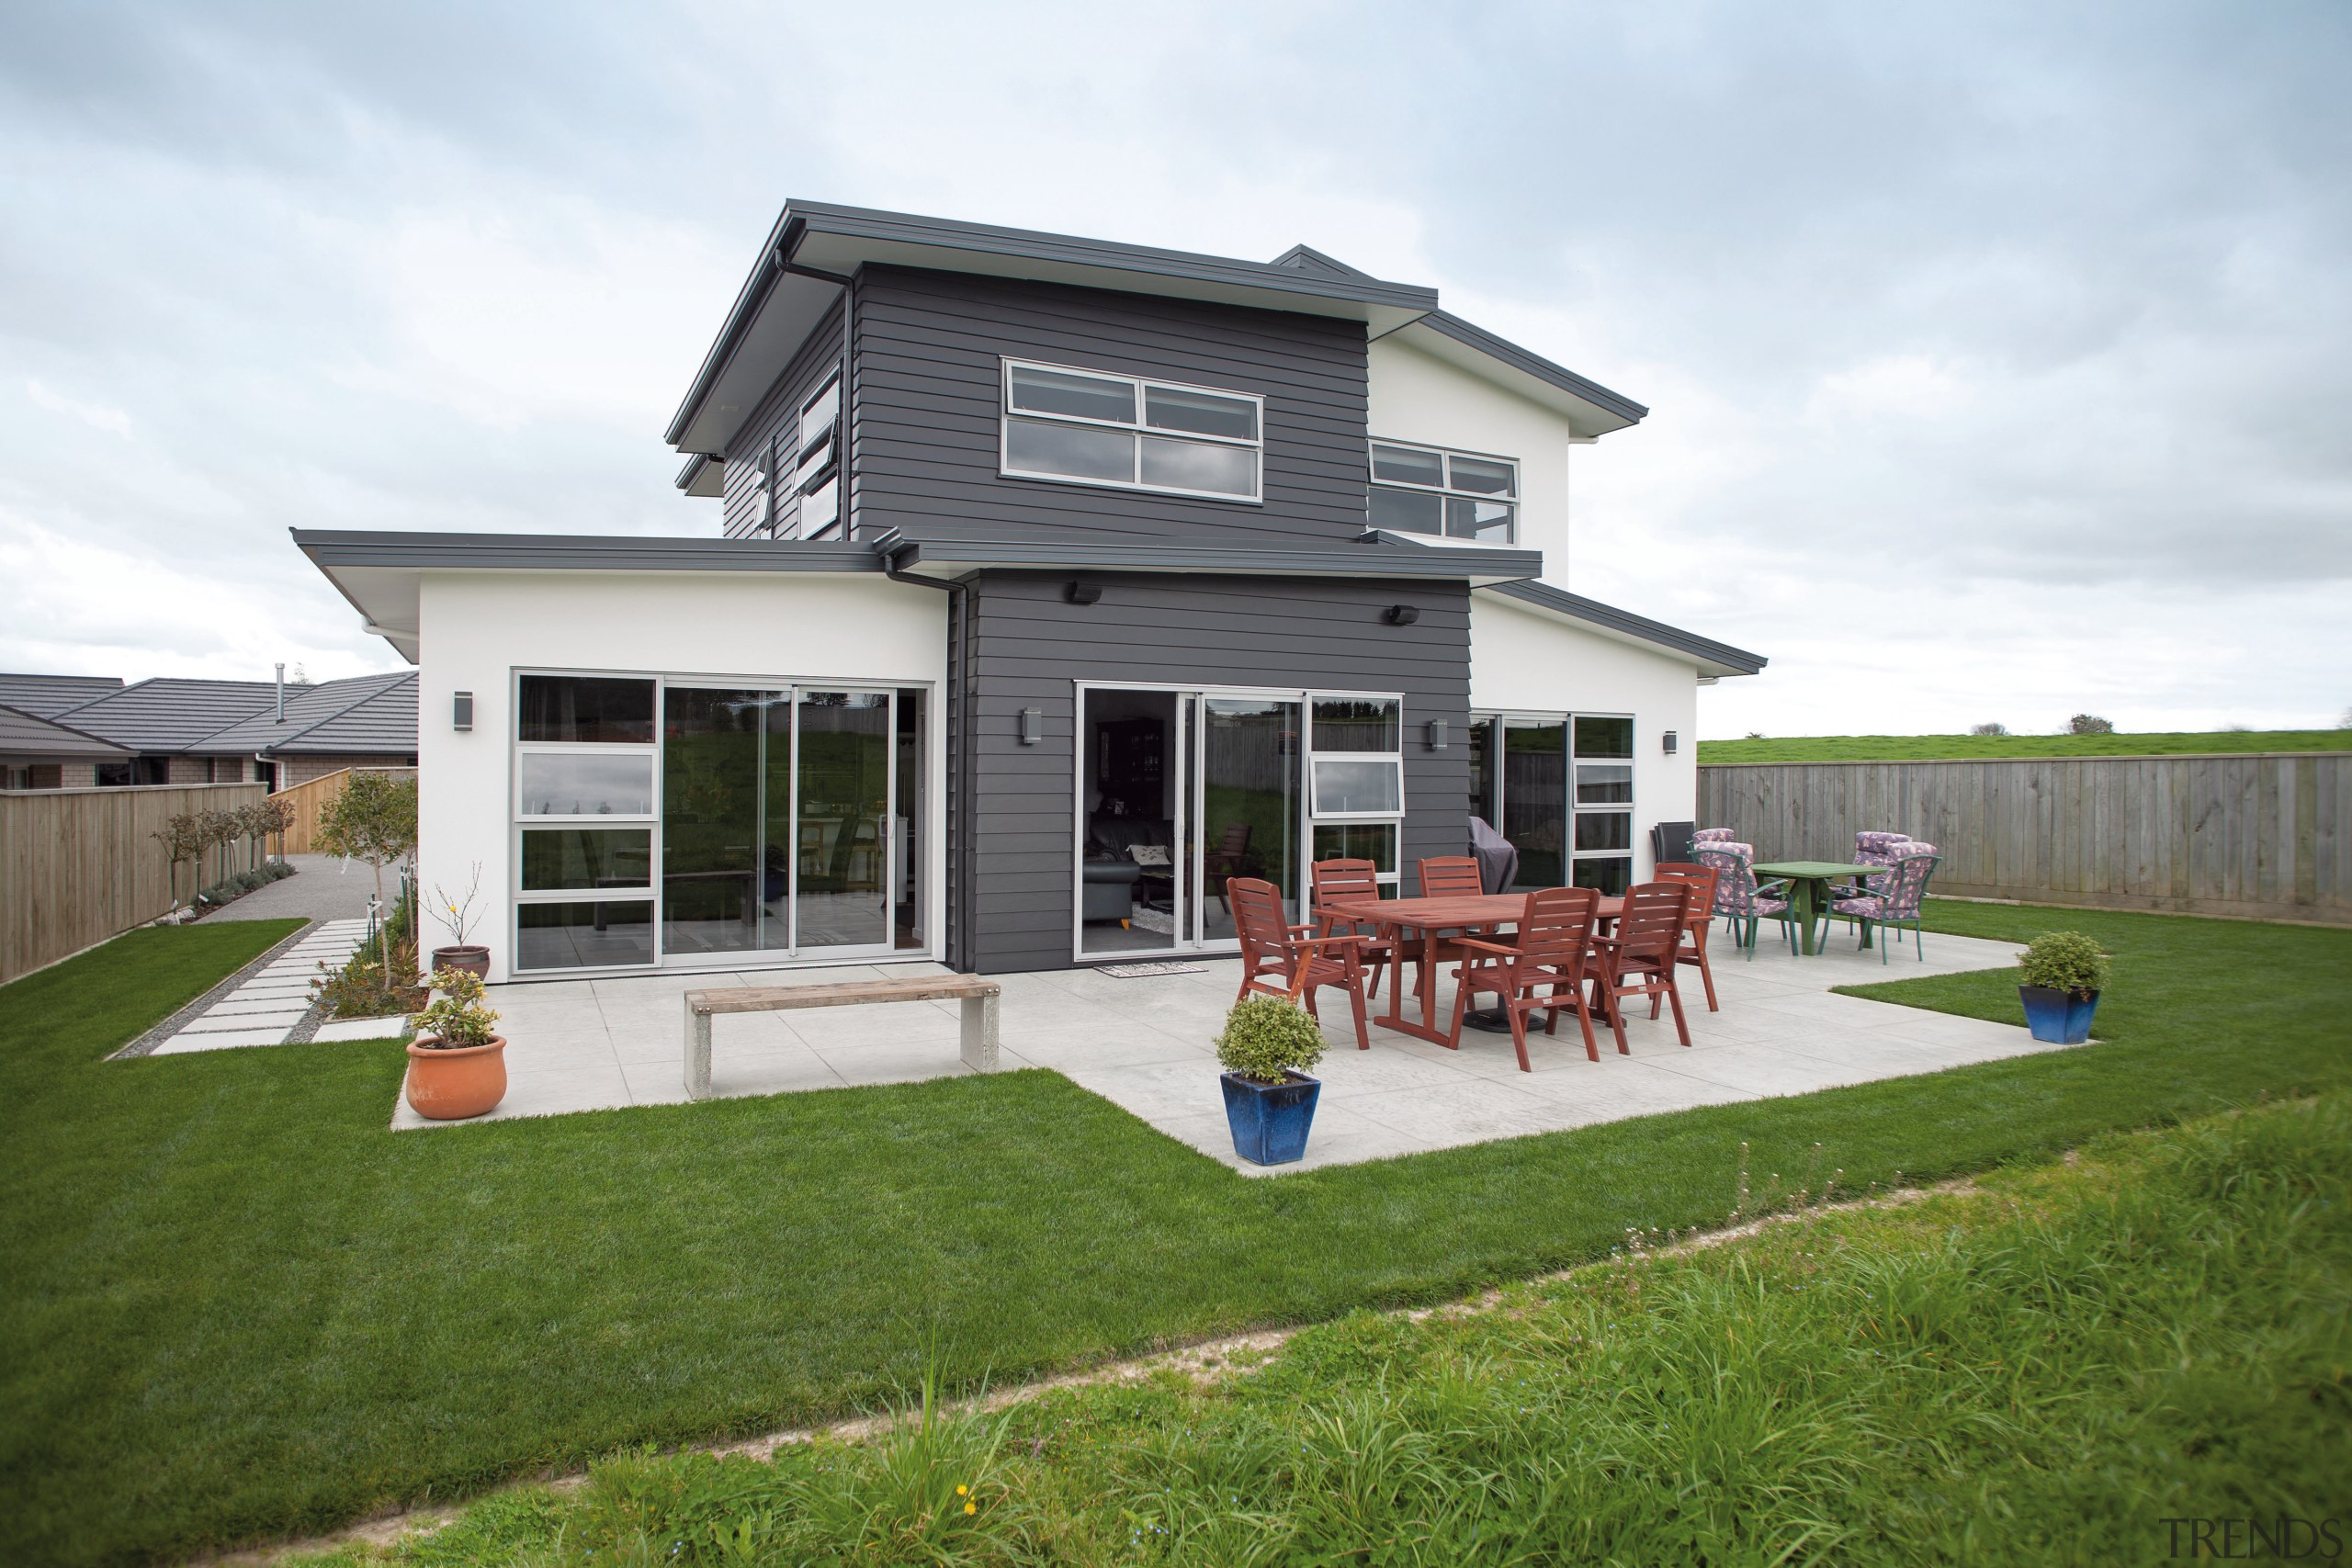 This new four-bedroom home, custom designed and built backyard, cottage, elevation, facade, home, house, property, real estate, residential area, yard, white, brown